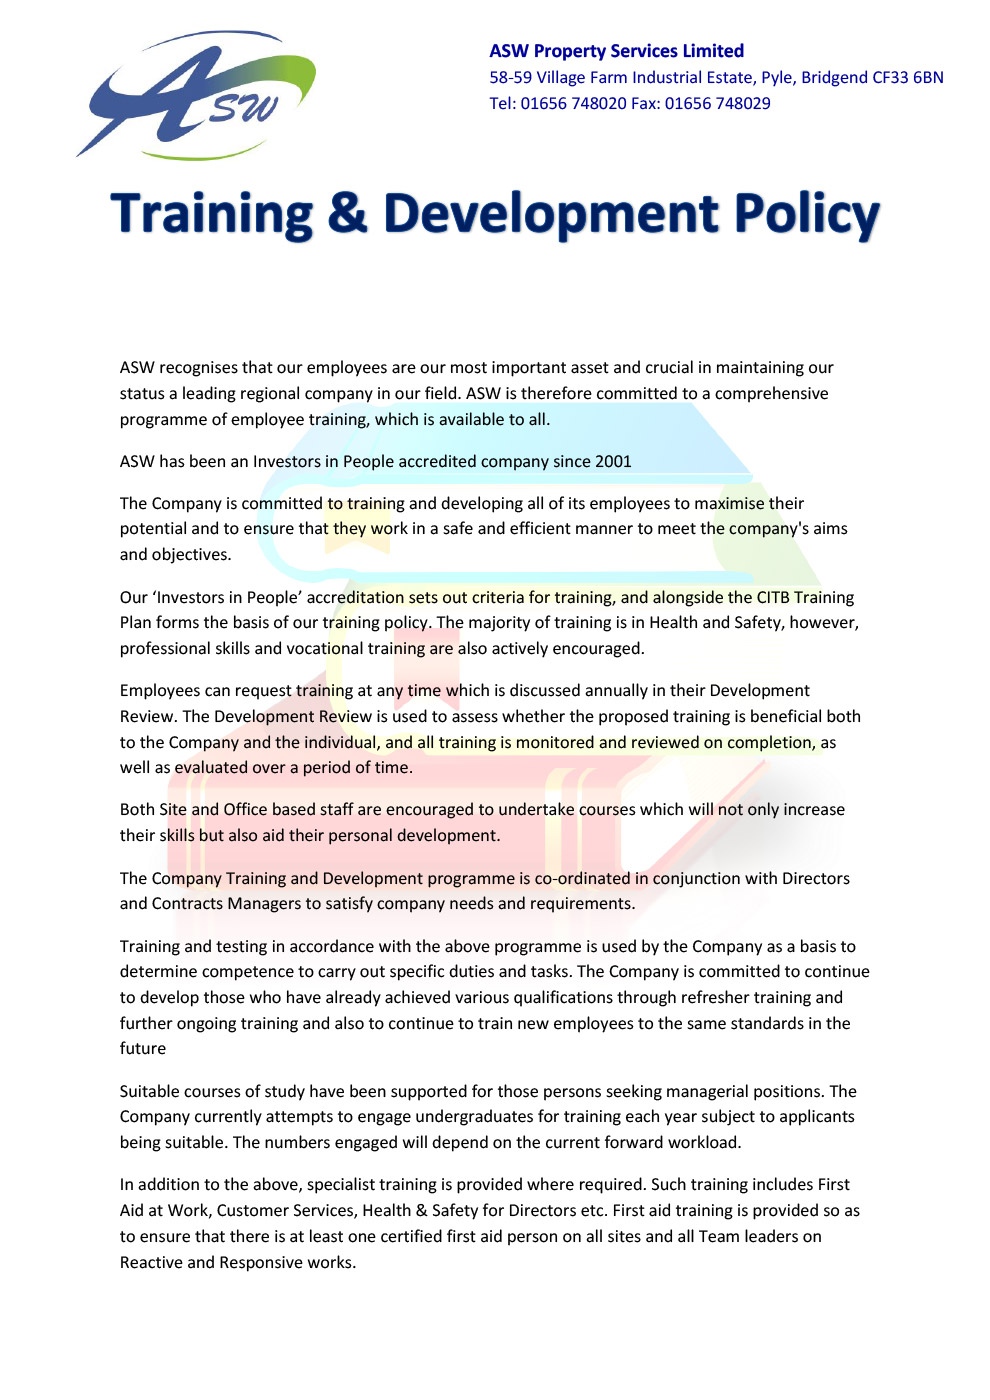 Company policies asw property services ltd asw training and development policy 2016 edition 1 xflitez Image collections